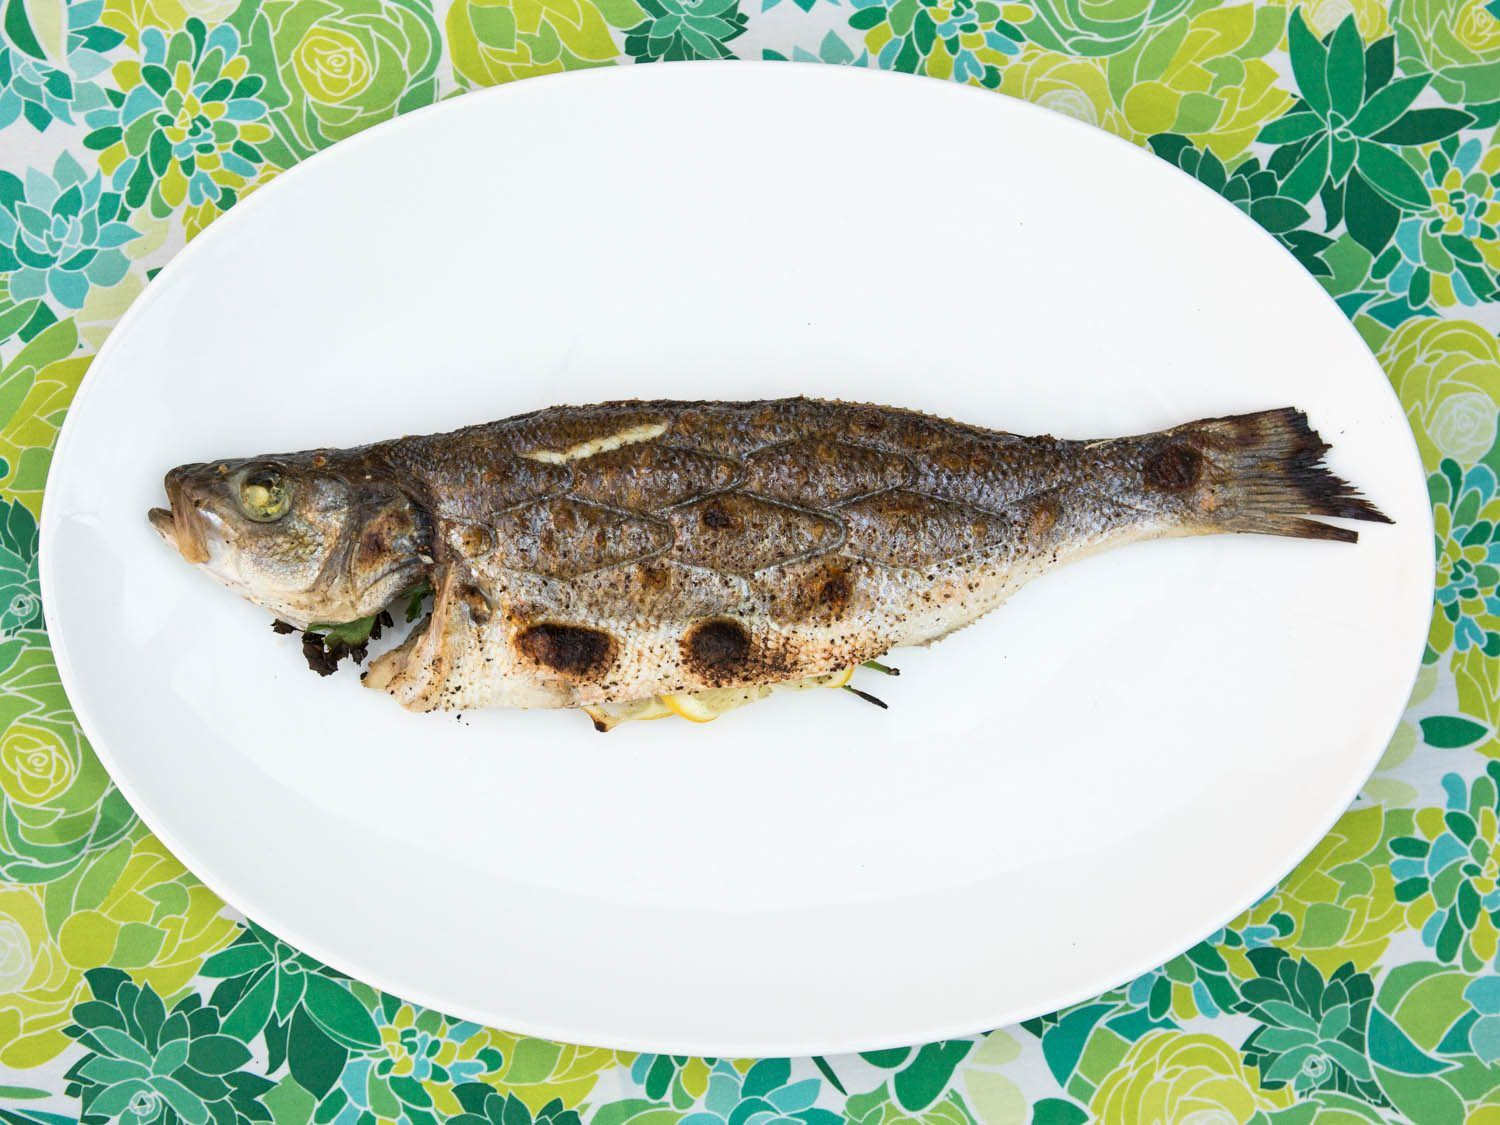 How to carve and serve whole cooked fish fish serious